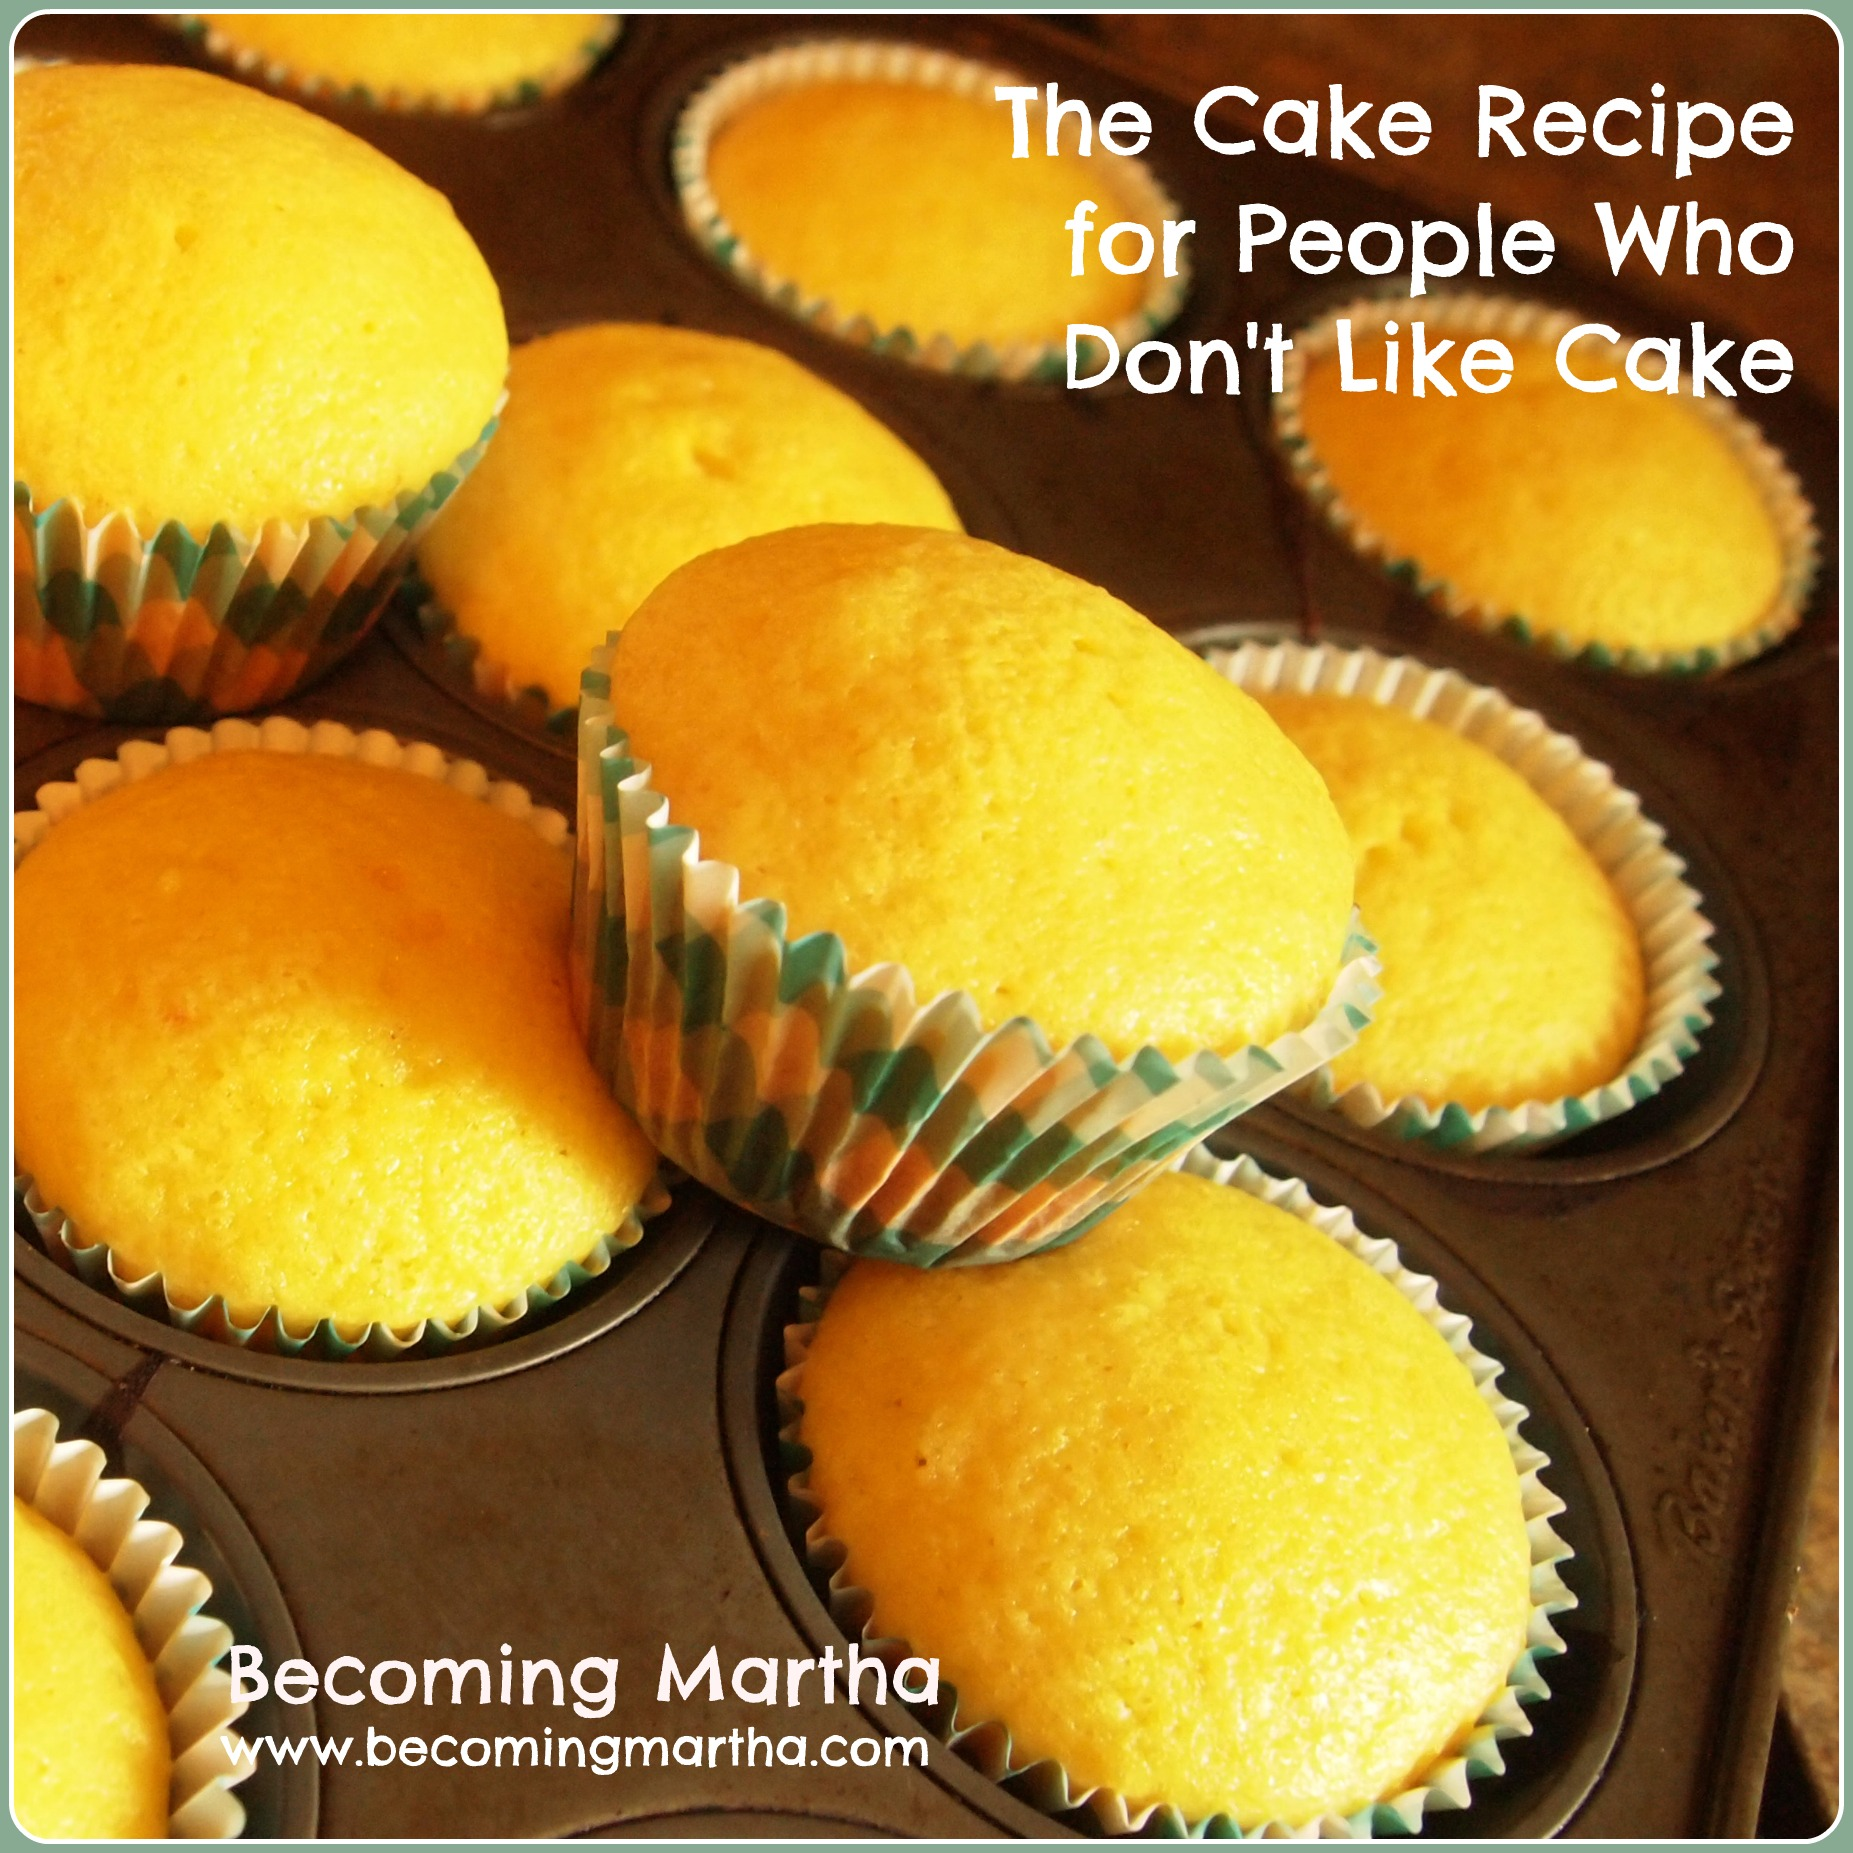 The Cake Recipe for People Who Don't Like Cake